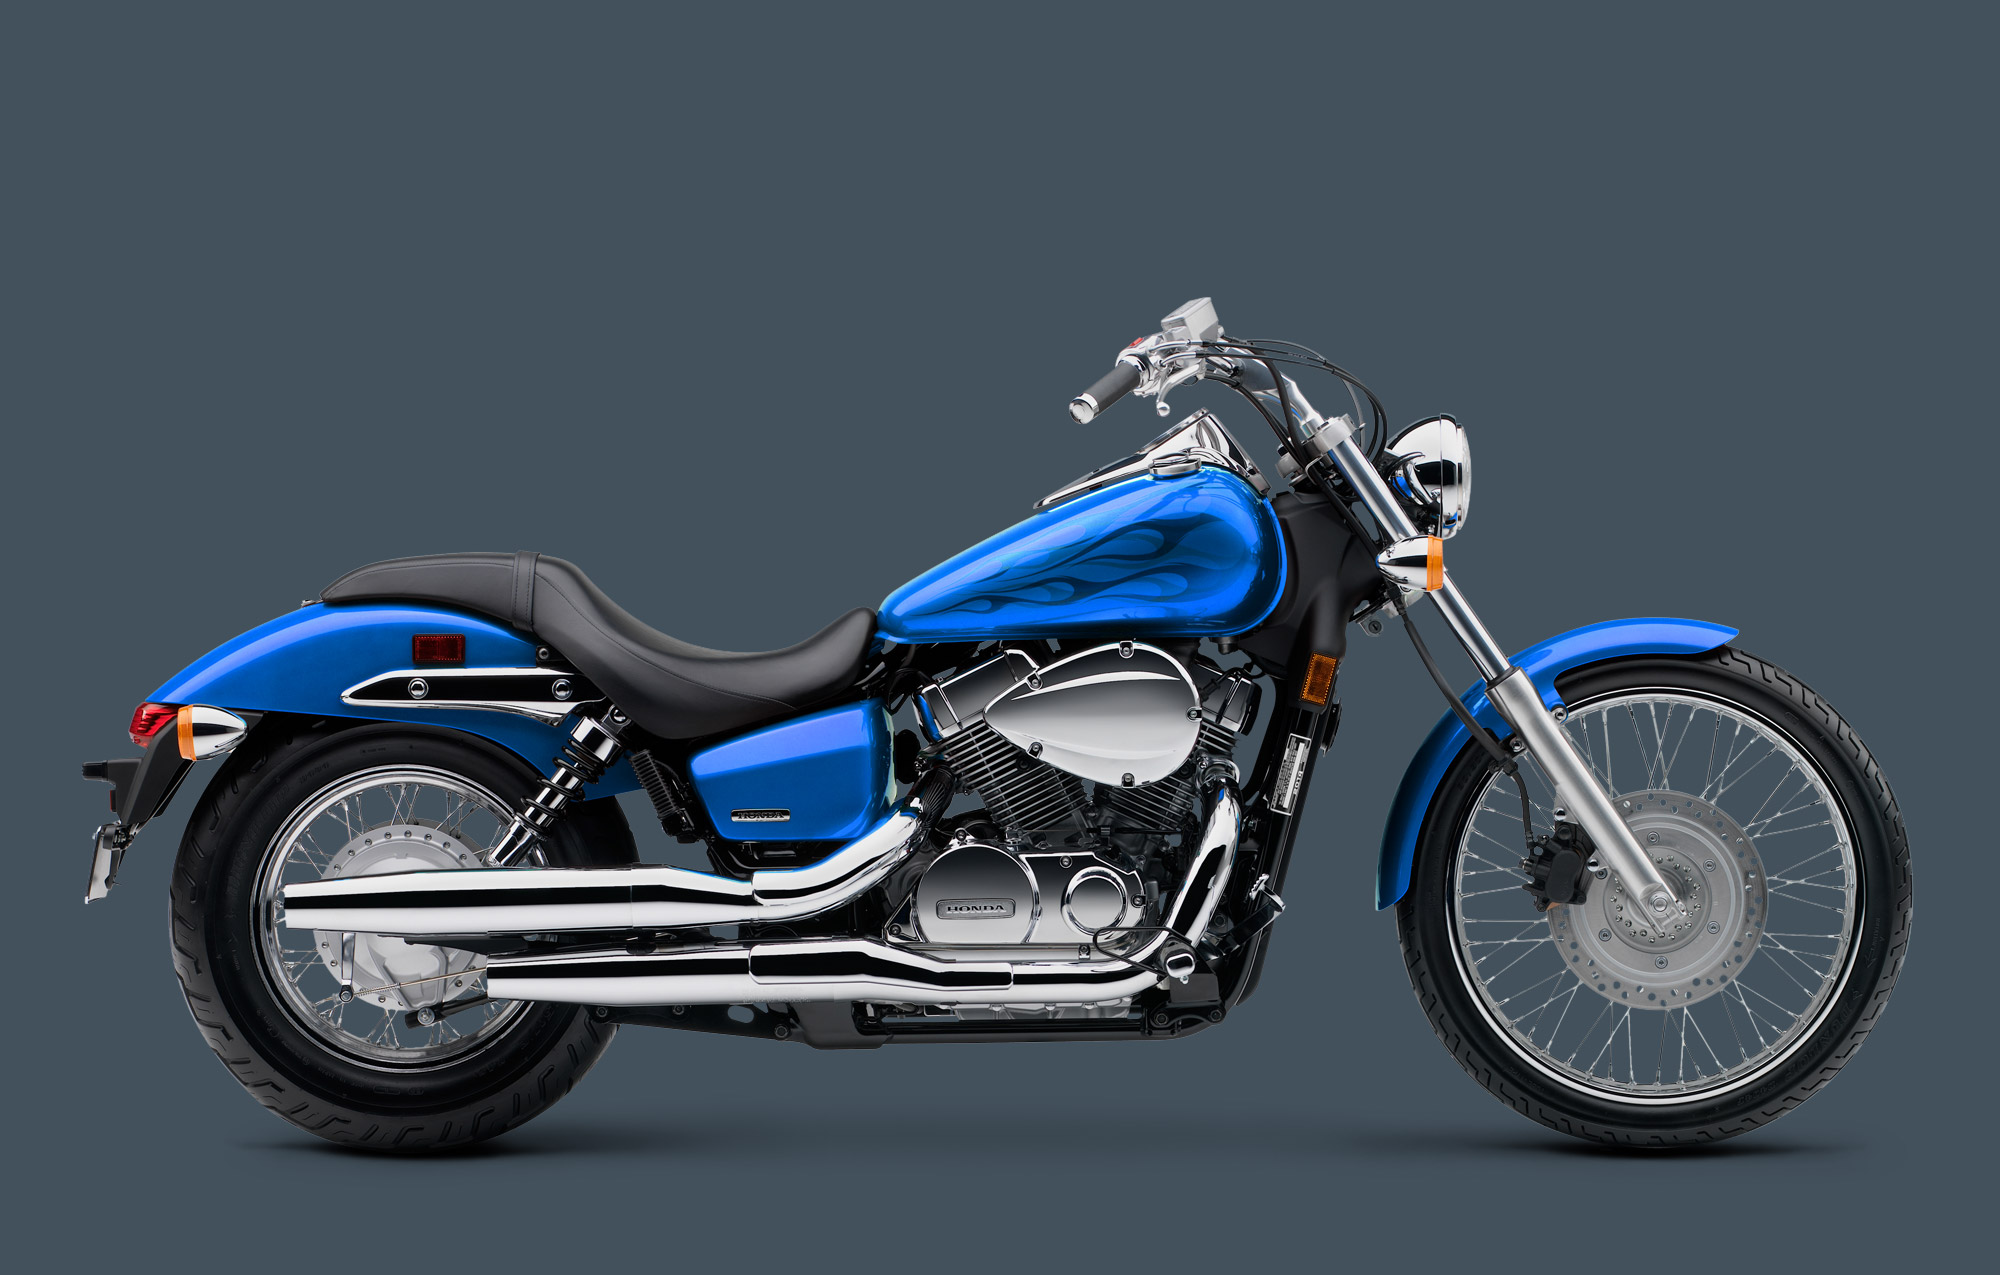 2014 Honda Shadow Spirit 750 Still Classic After All